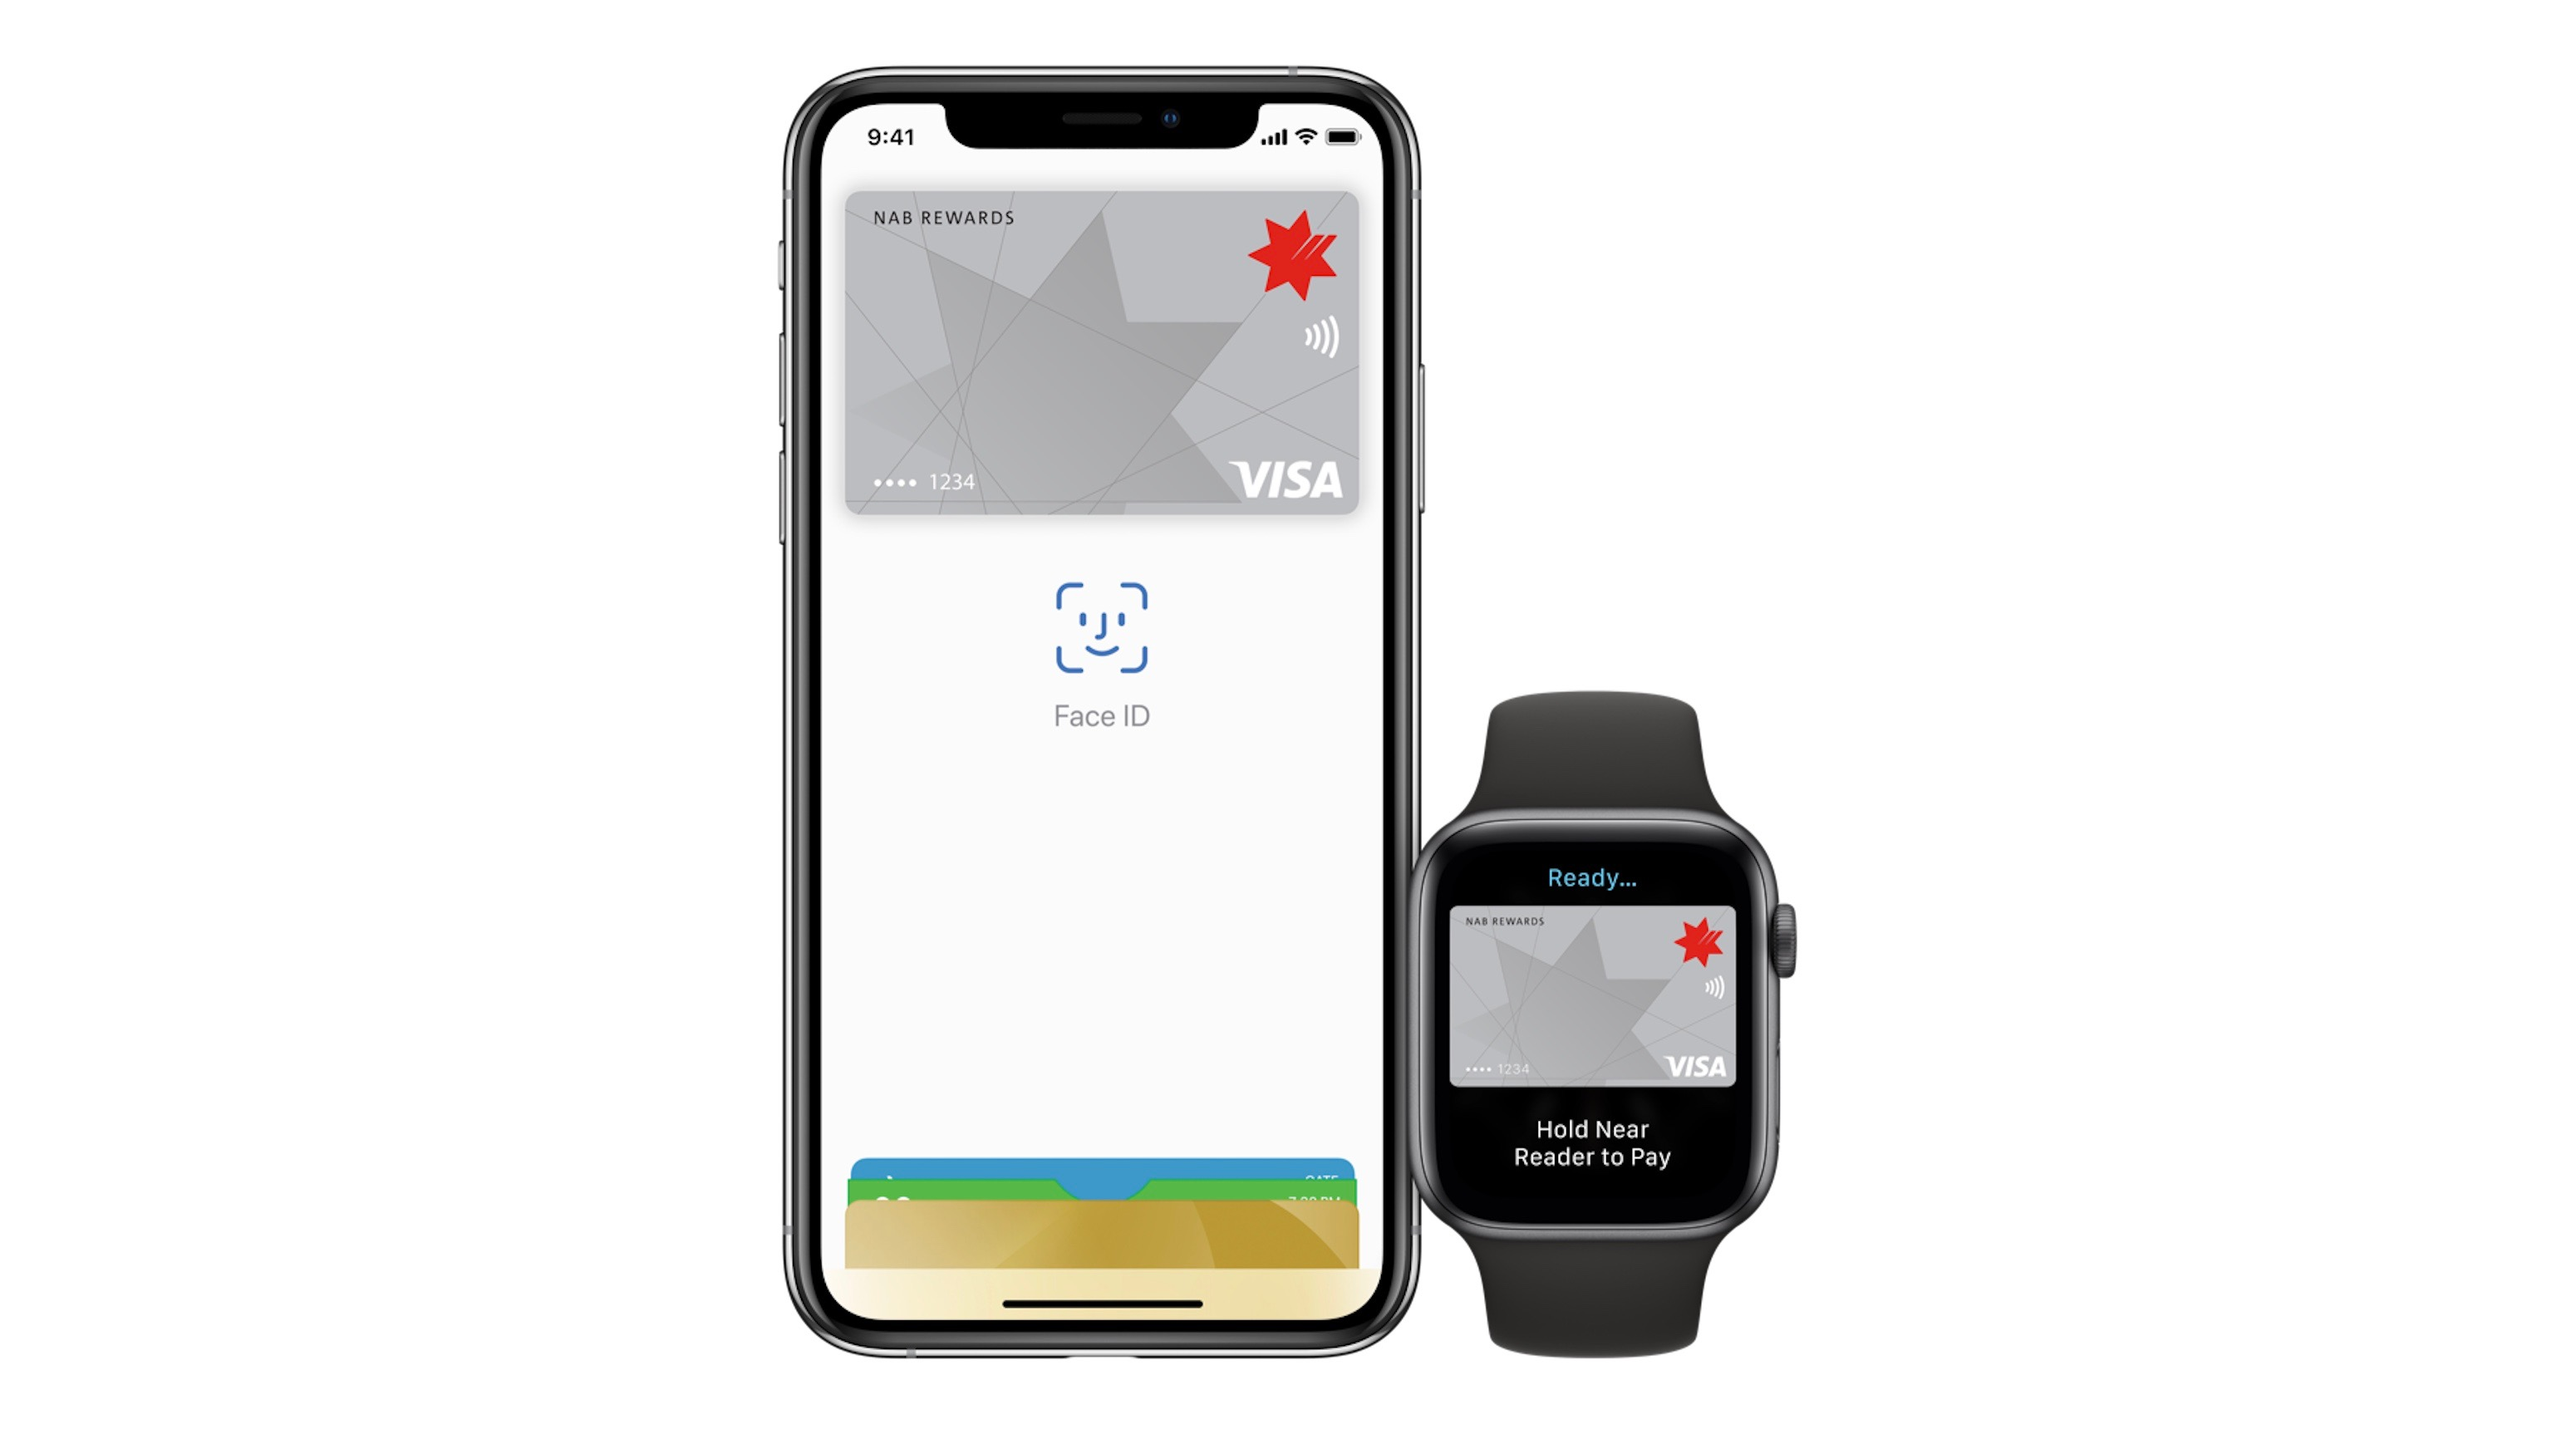 National Australia Bank becomes latest Australian 'big four' bank to support Apple Pay